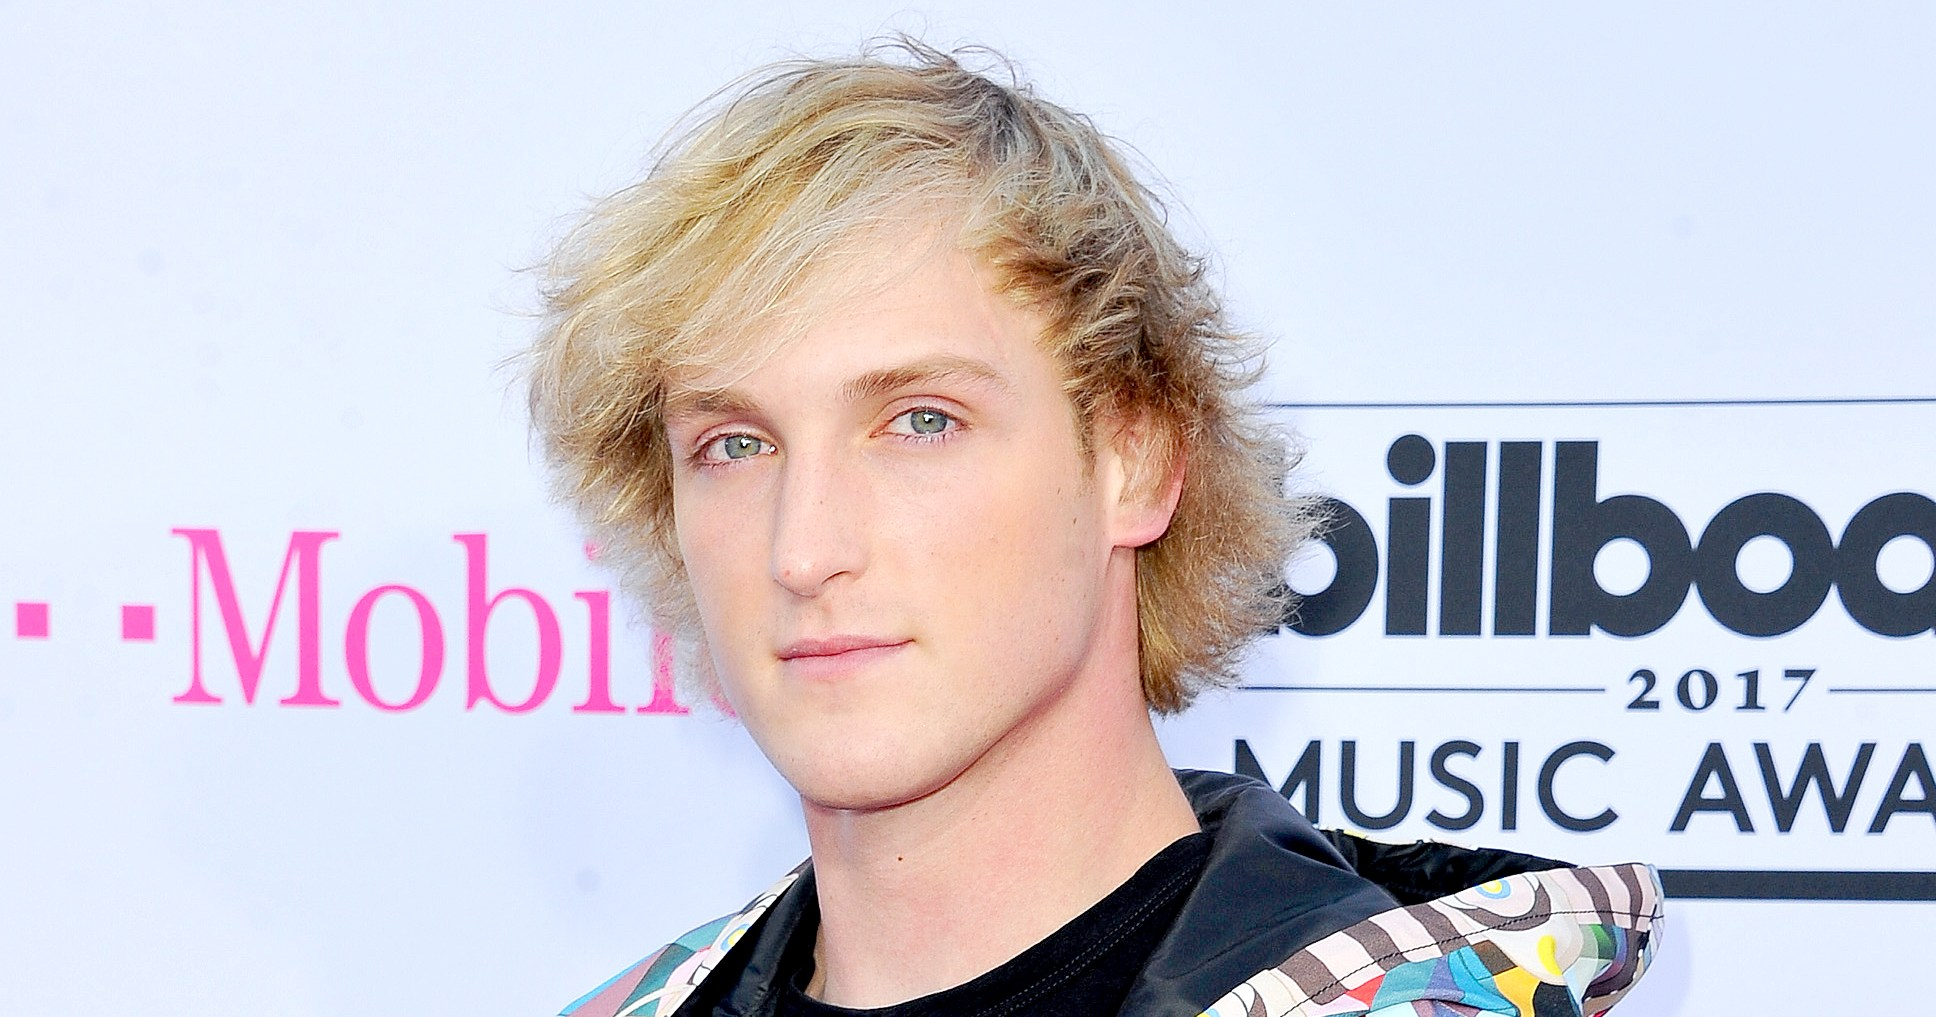 YouTube's Logan Paul Plans to 'Go Gay' for 1 Month, Sparks Backlash